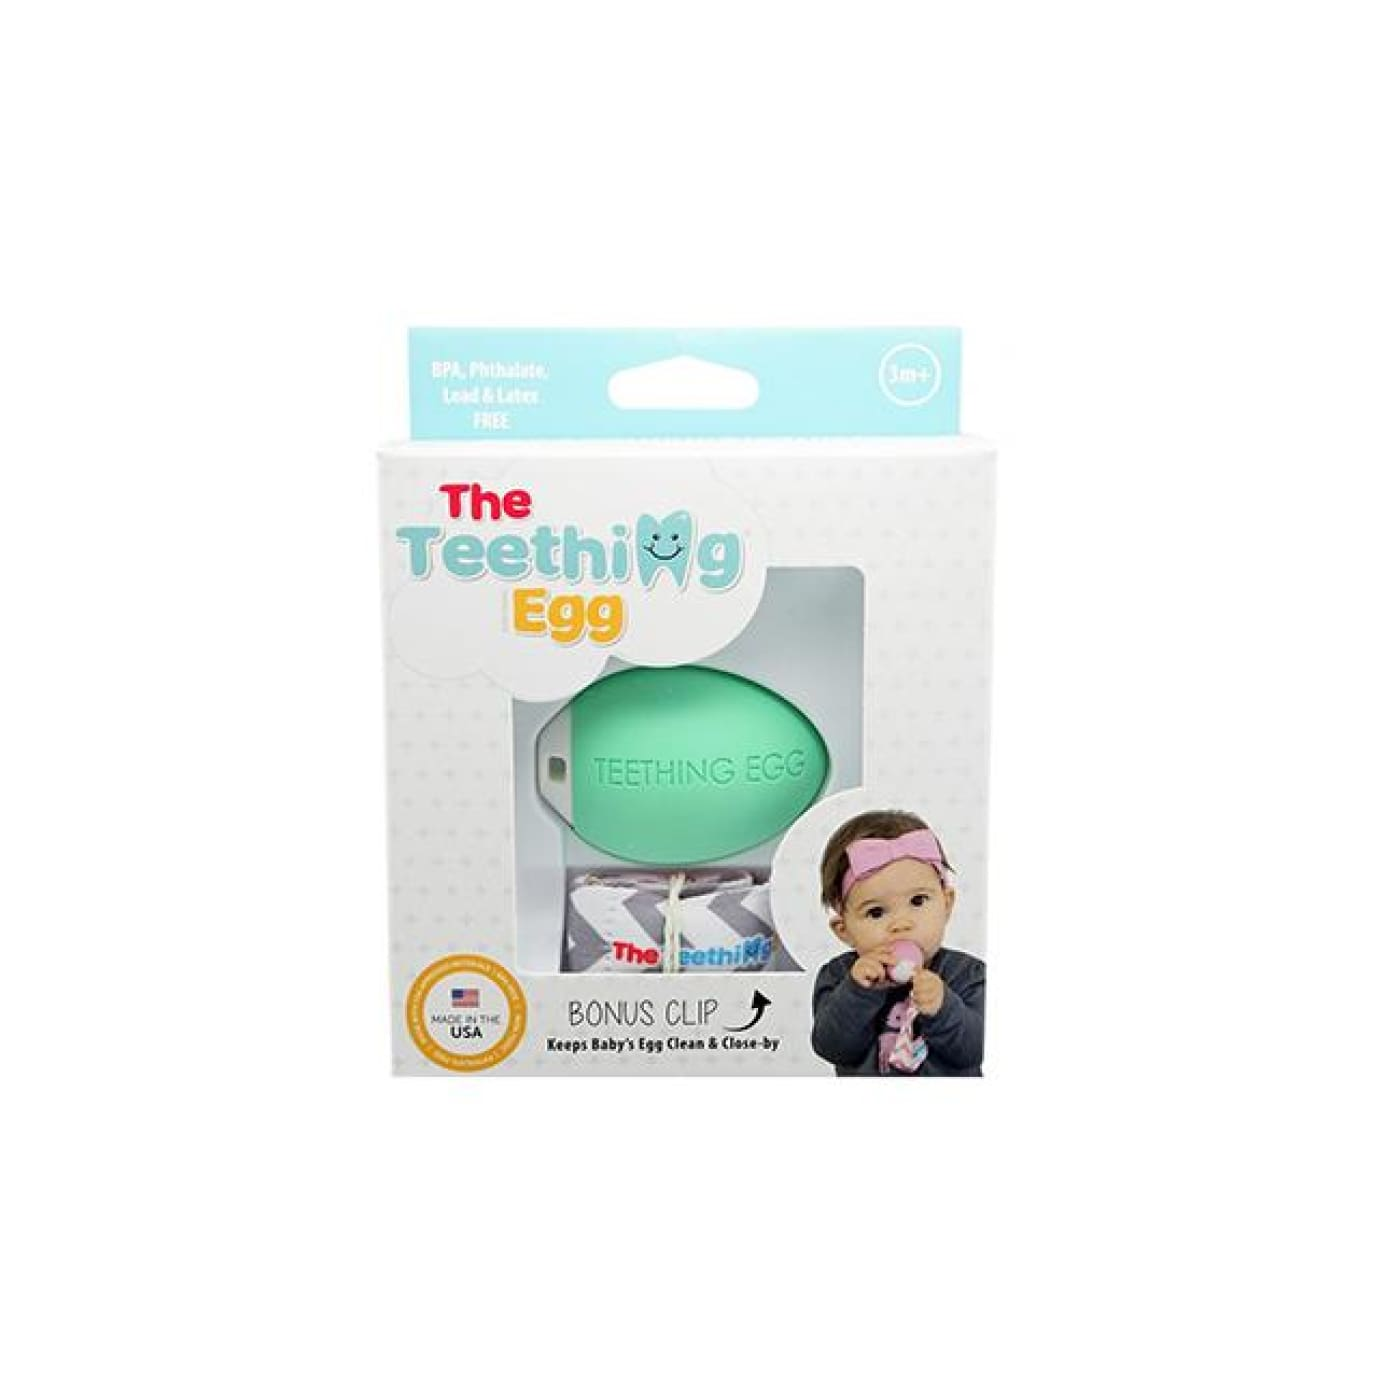 The Teething Egg - Green - NURSING & FEEDING - TEETHERS/TEETHING JEWELLERY